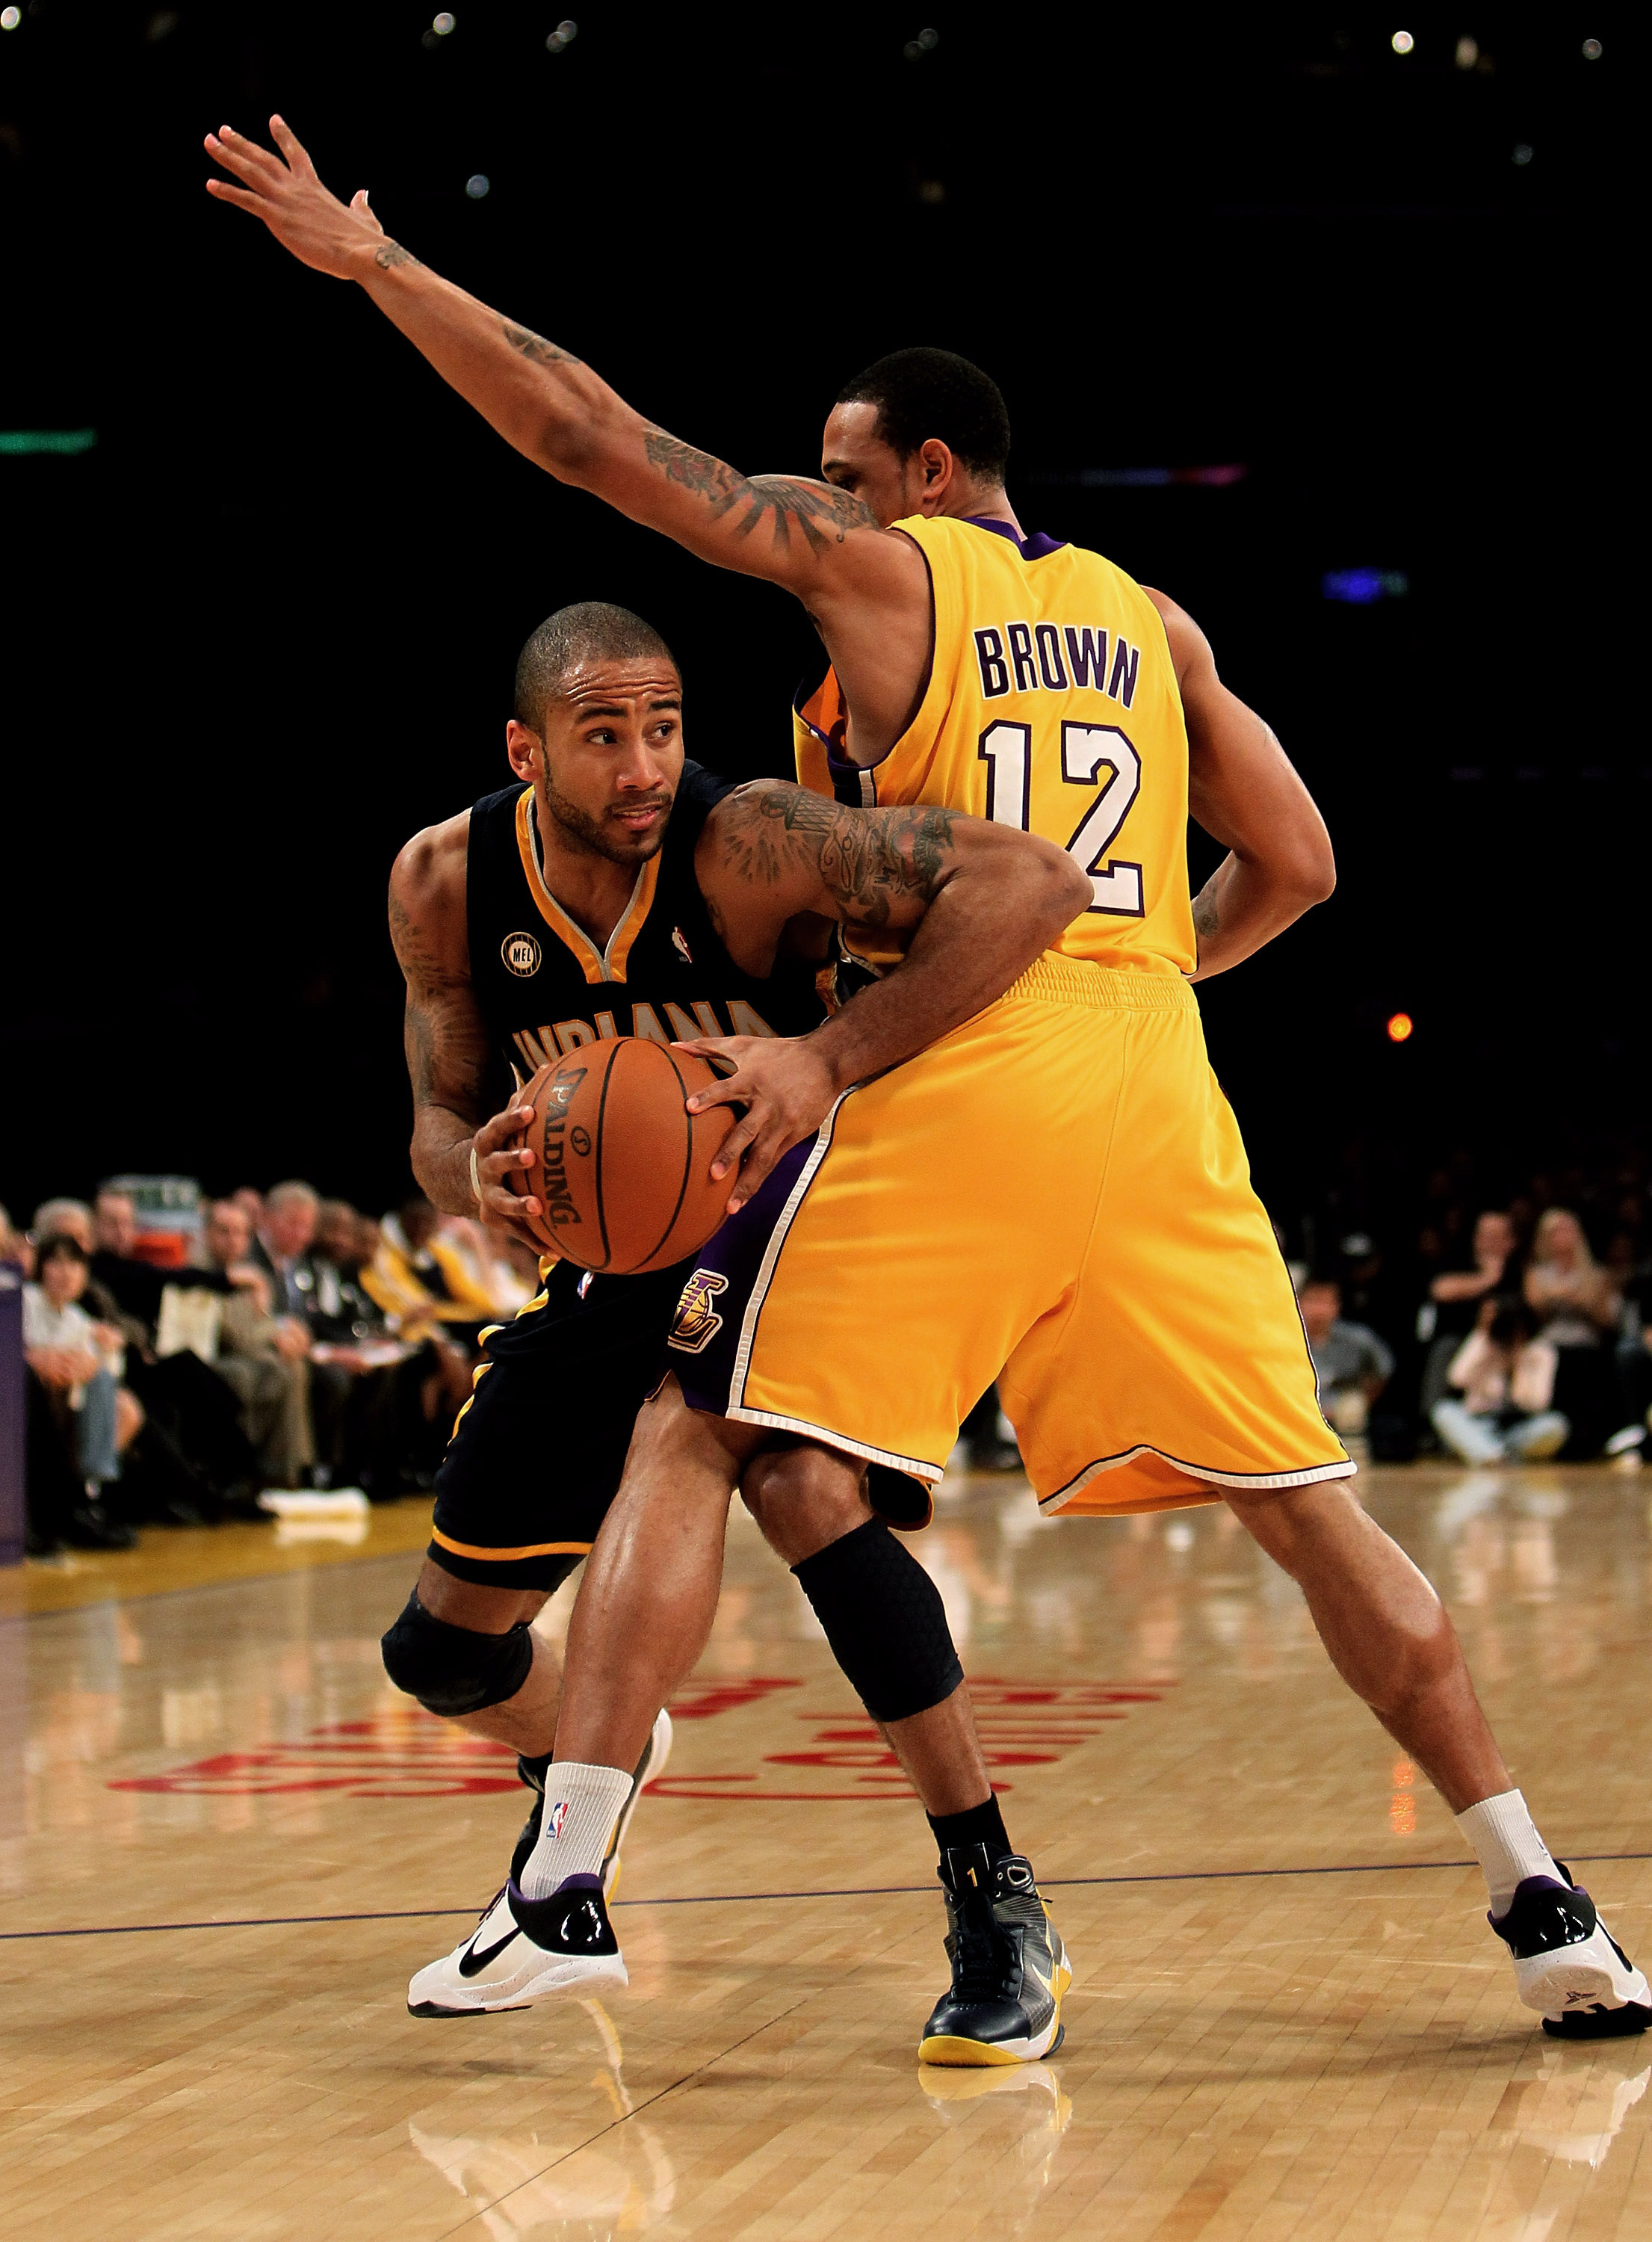 LOS ANGELES, CA - MARCH 02:  Dahntay Jones #1 of the Indiana Pacers drives against Shannon Brown #12 of the Los Angeles Lakers on March 2, 2010 at Staples Center in Los Angeles, California. The Lakers won 122-99.  NOTE TO USER: User expressly acknowledges